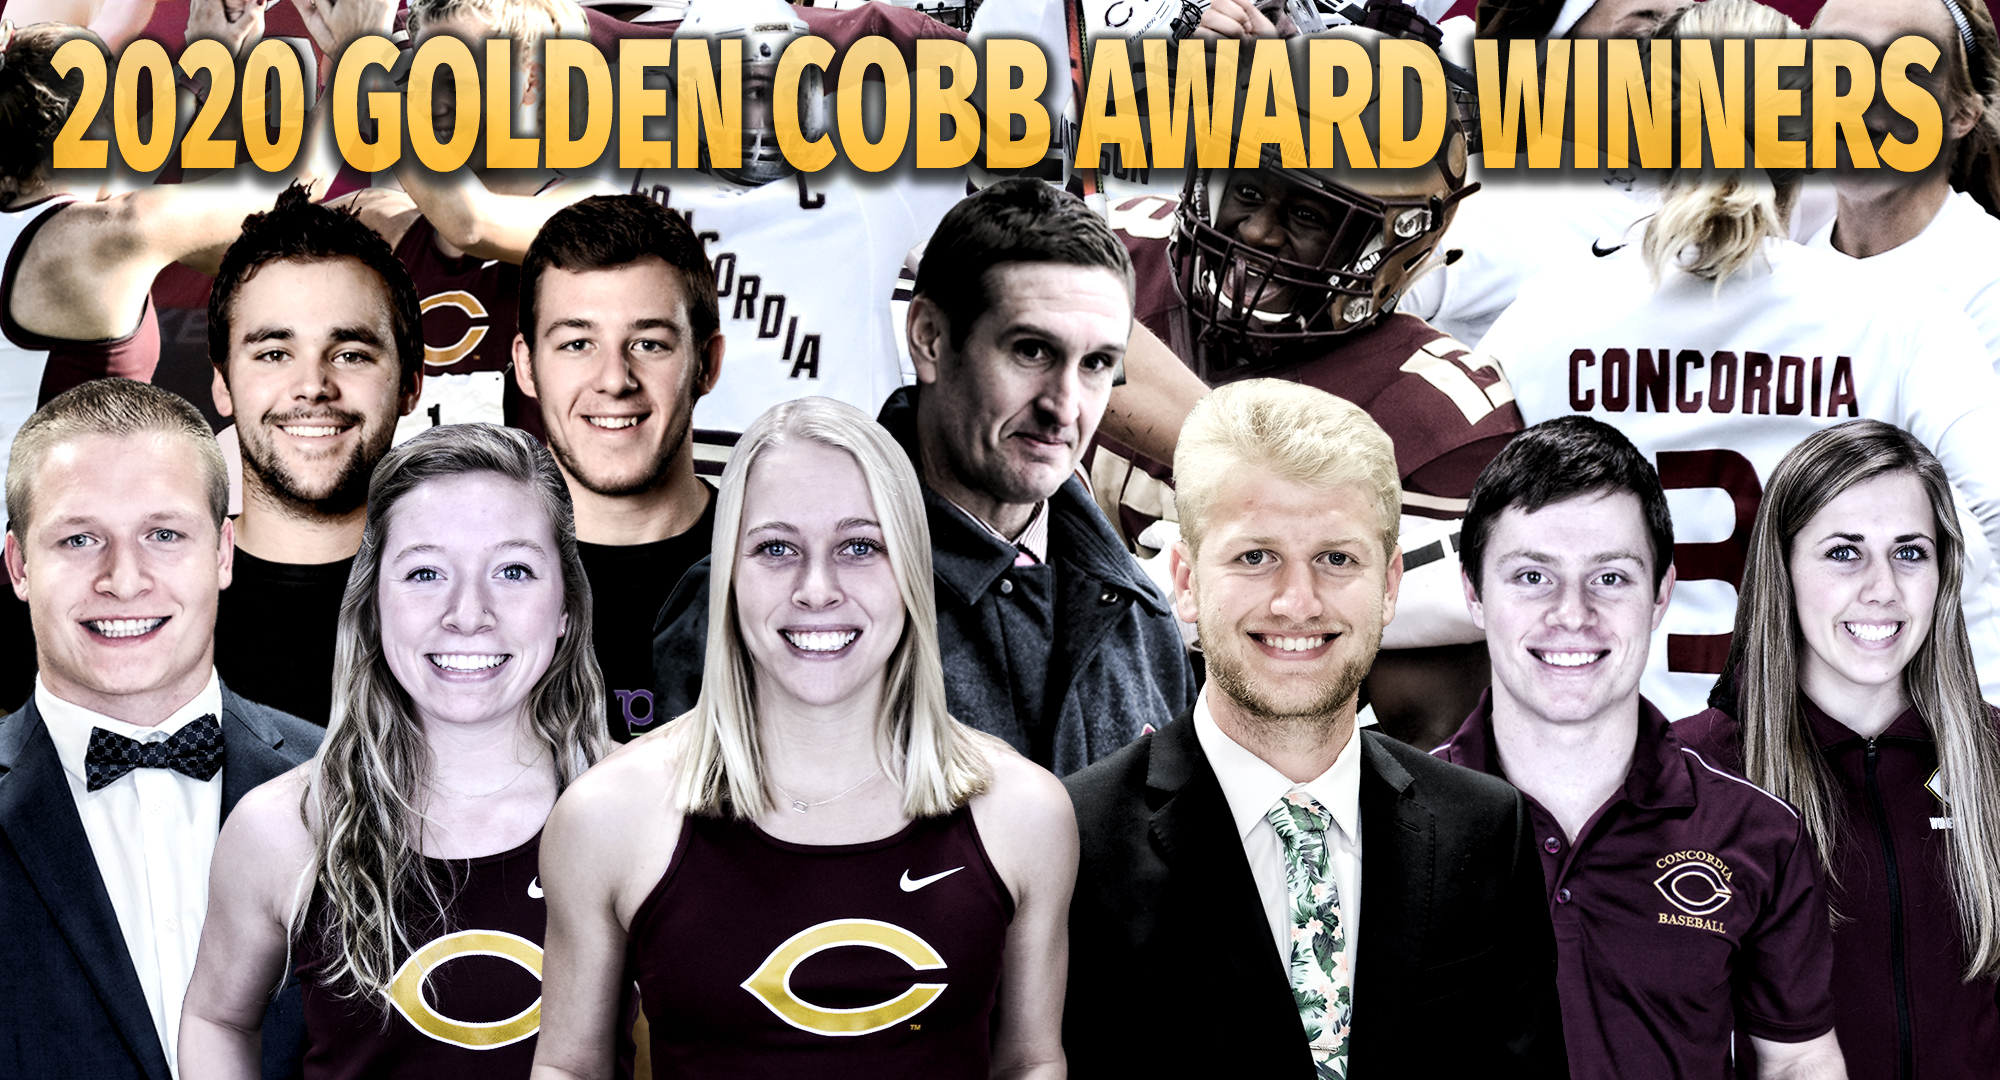 The 2020 Golden Cobb Award Winners